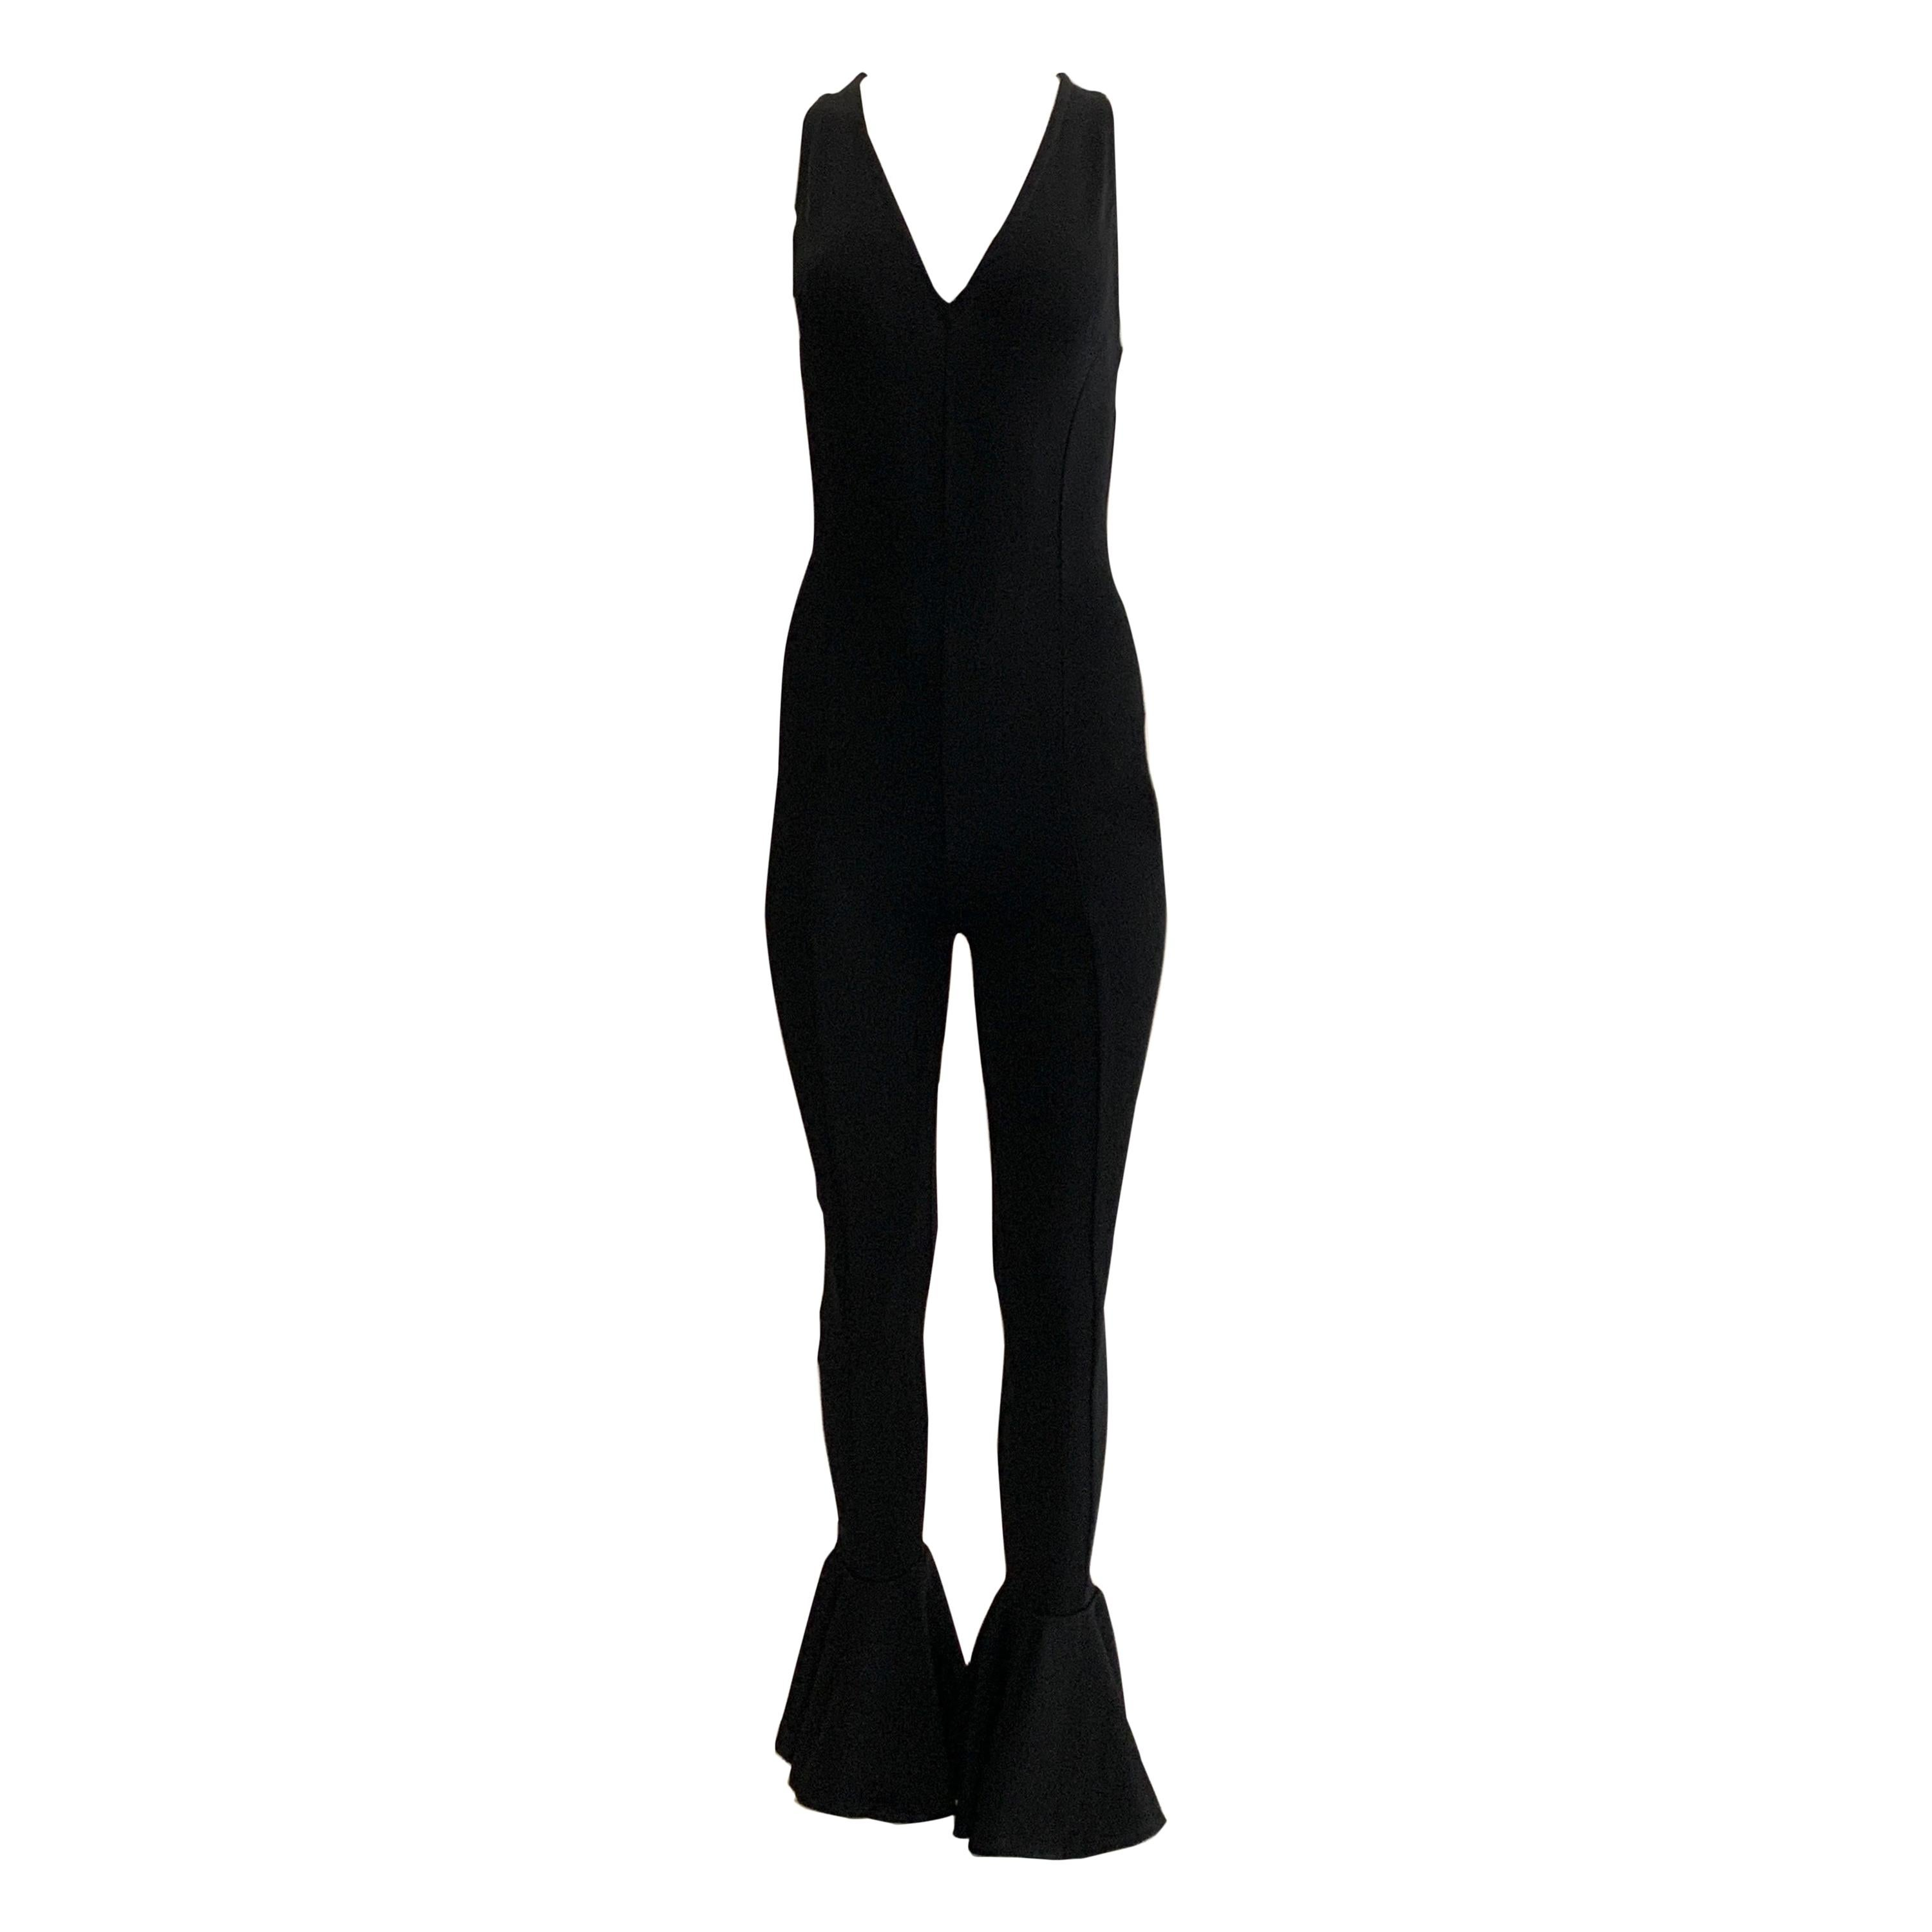 Gianni Versace Couture 1993 Runway Black Knit Flare Ankle Jumpsuit